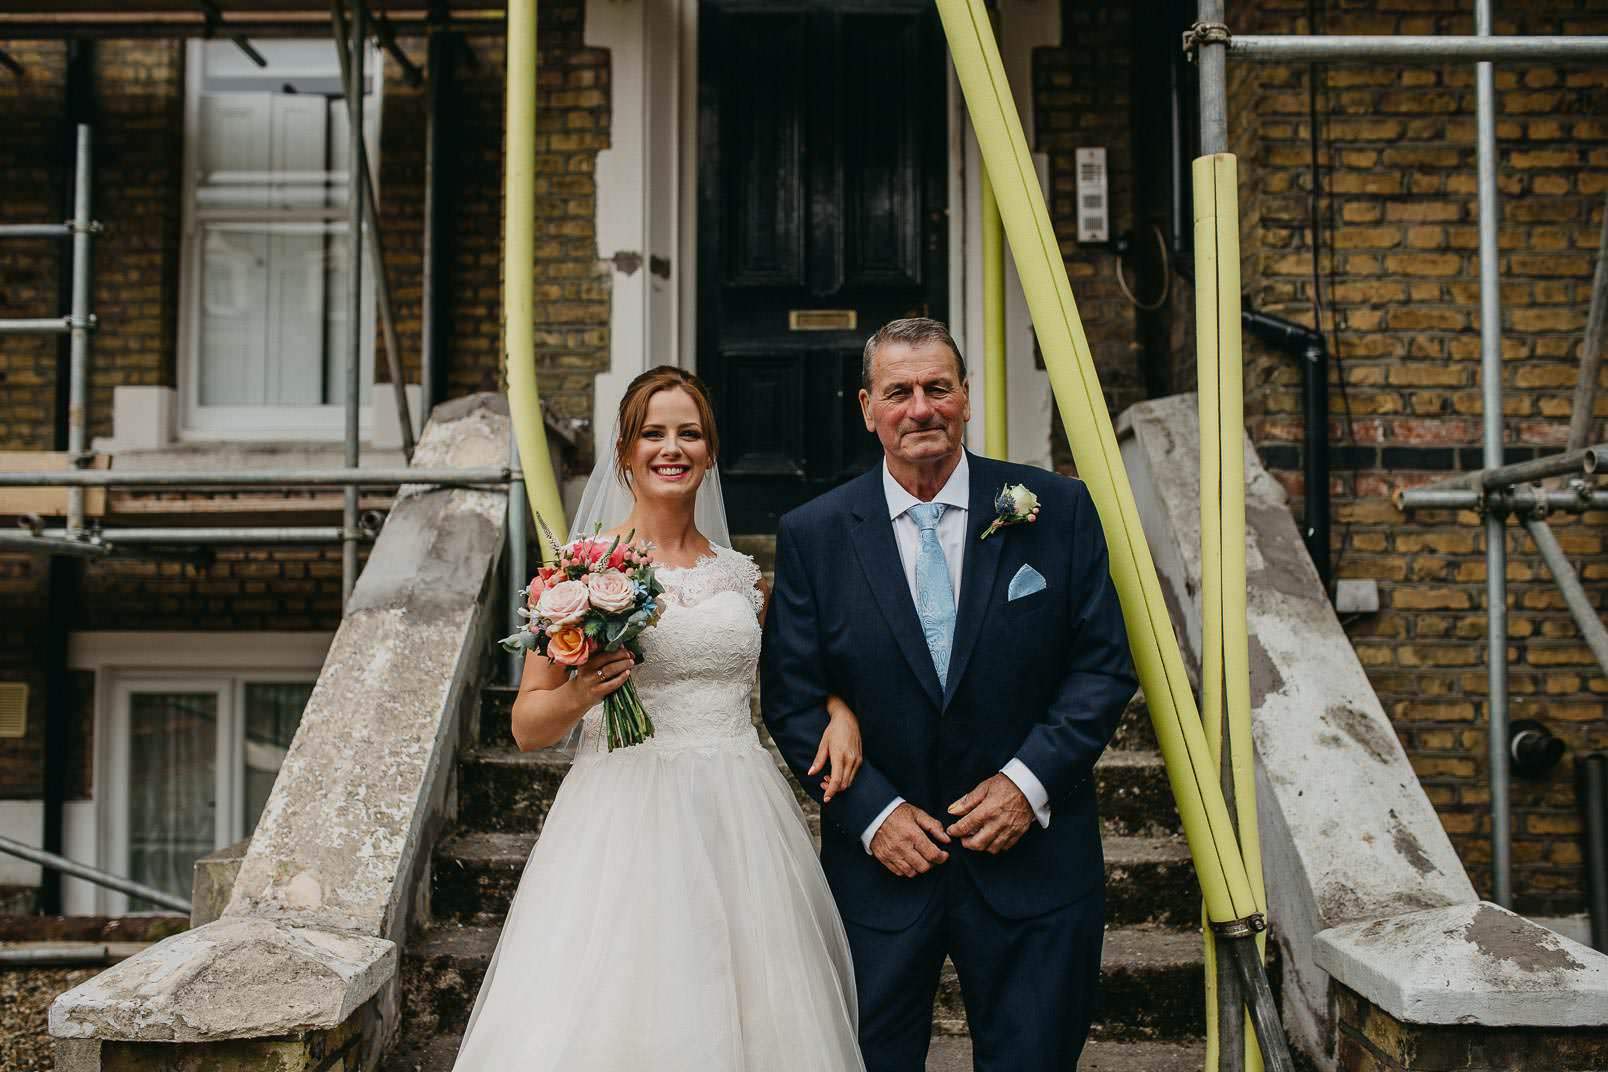 bride in wedding dress with father